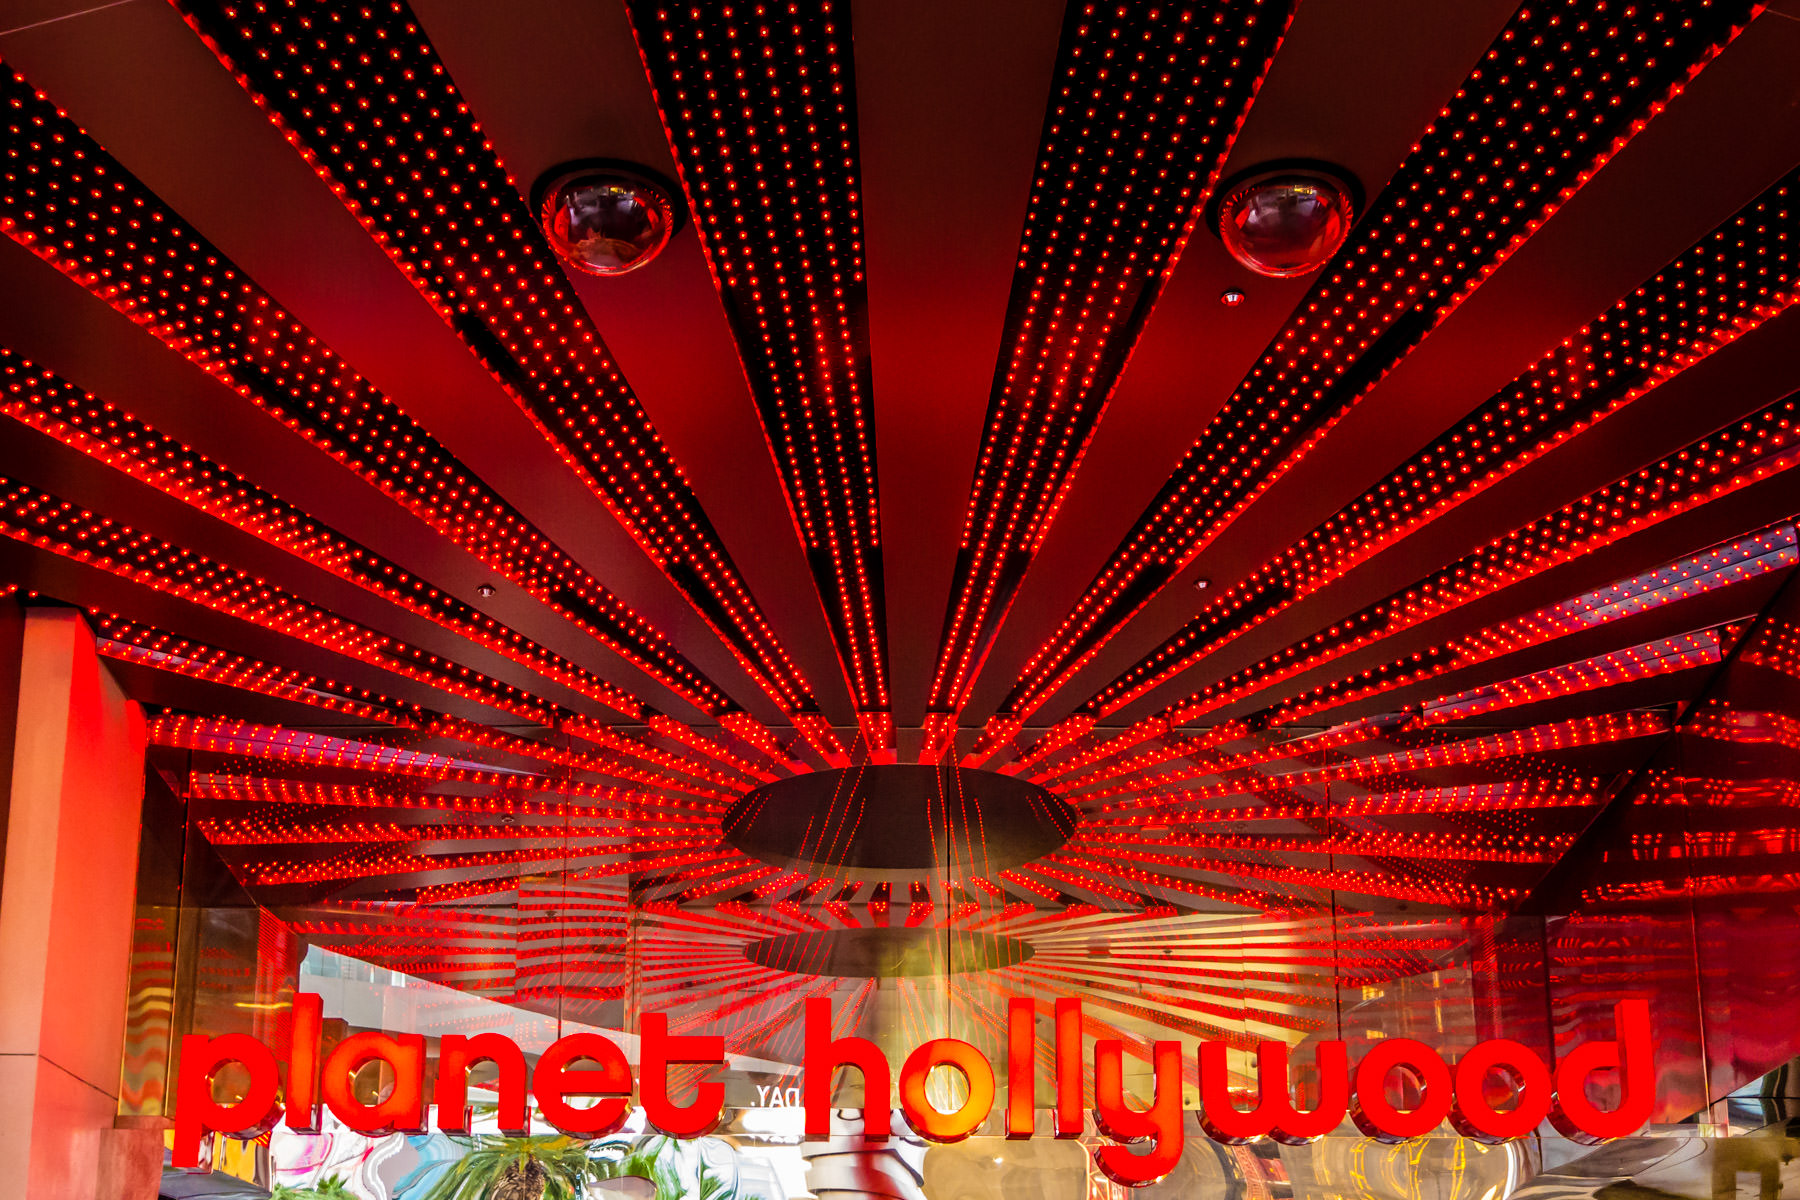 Detail of an entryway and accompanying sign at Planet Hollywood Resort and Casino in Las Vegas.